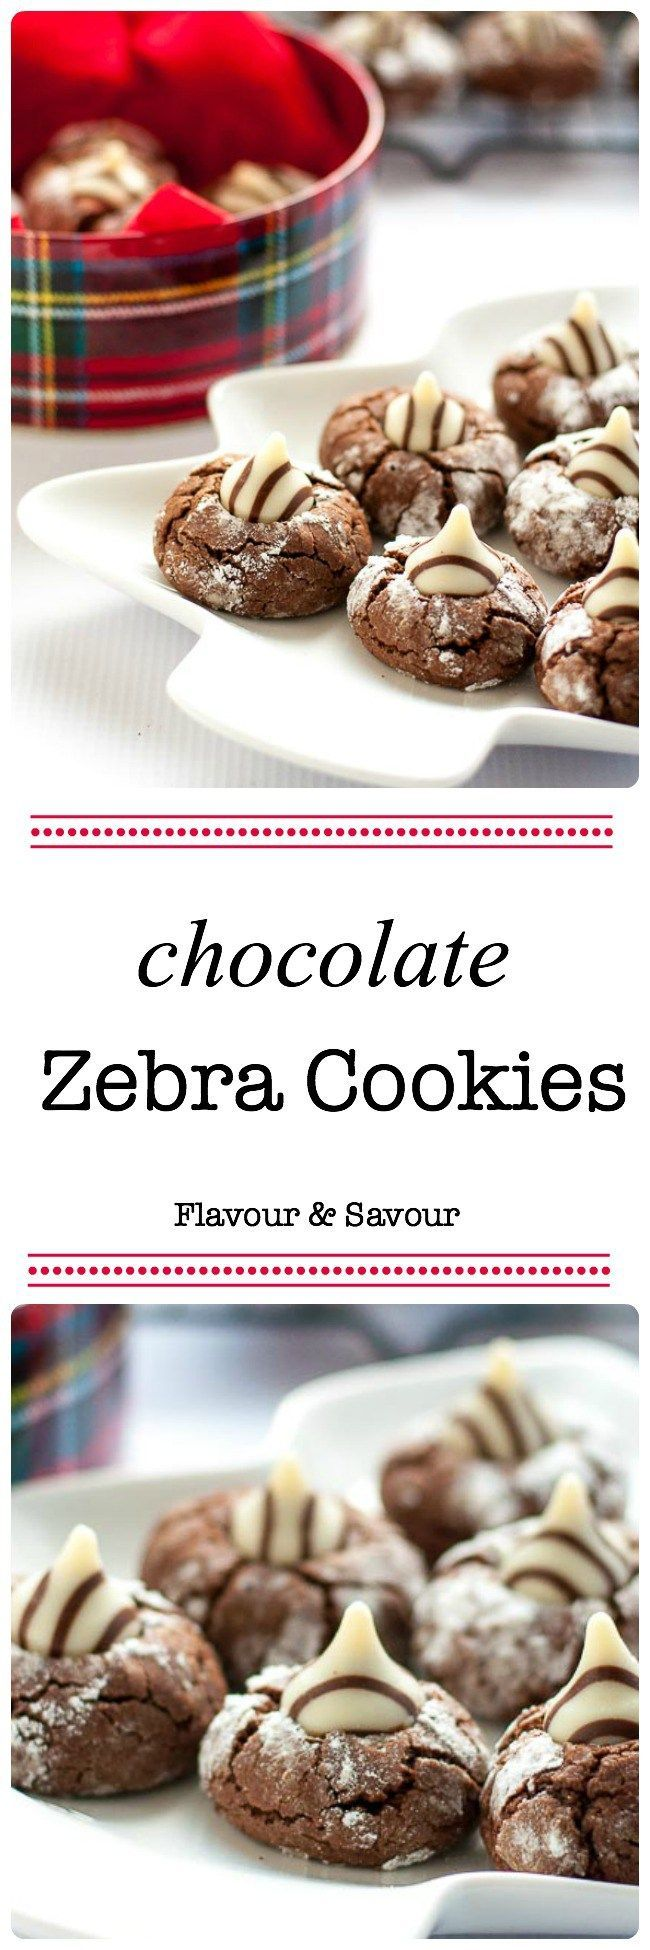 These Zebra cookies are a rich chocolate cookie with a Hershey's kiss pressed in the middle. Always popular!